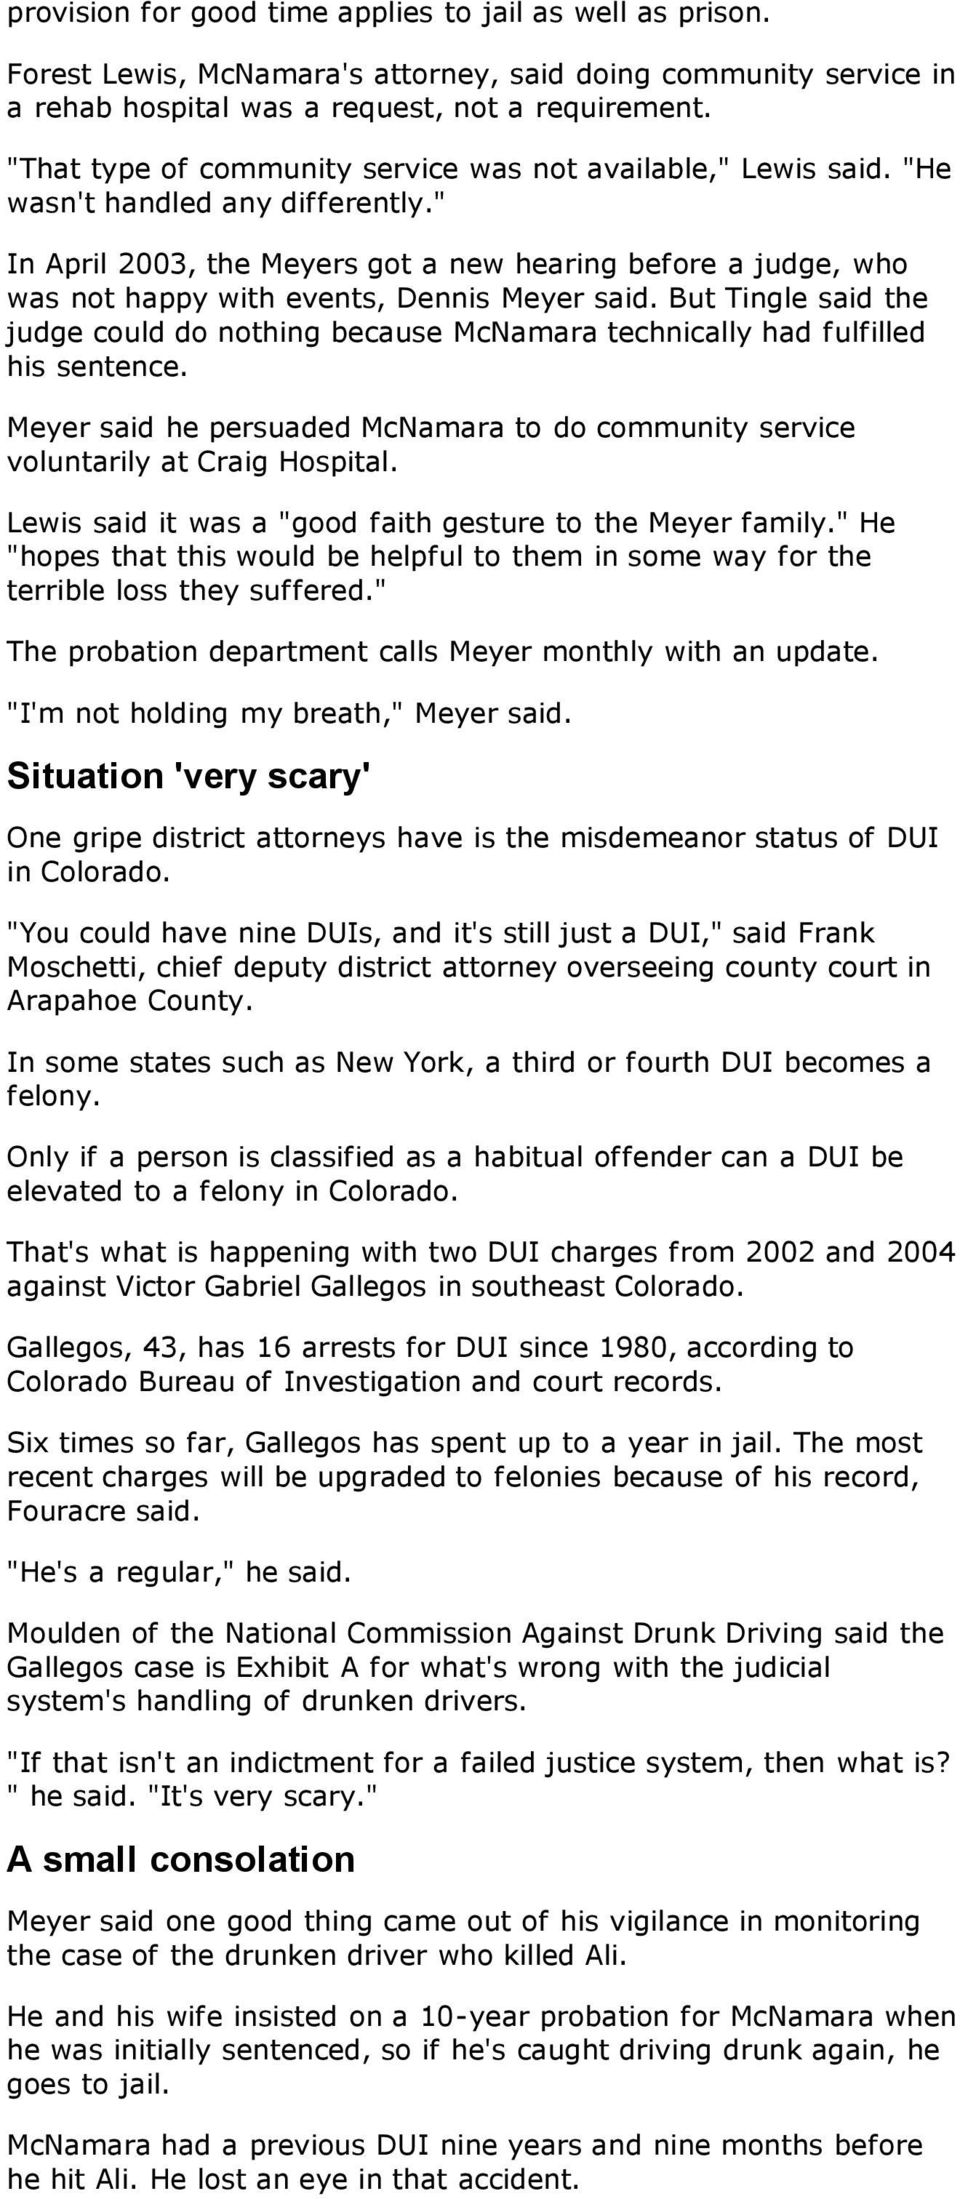 """ In April 2003, the Meyers got a new hearing before a judge, who was not happy with events, Dennis Meyer said."